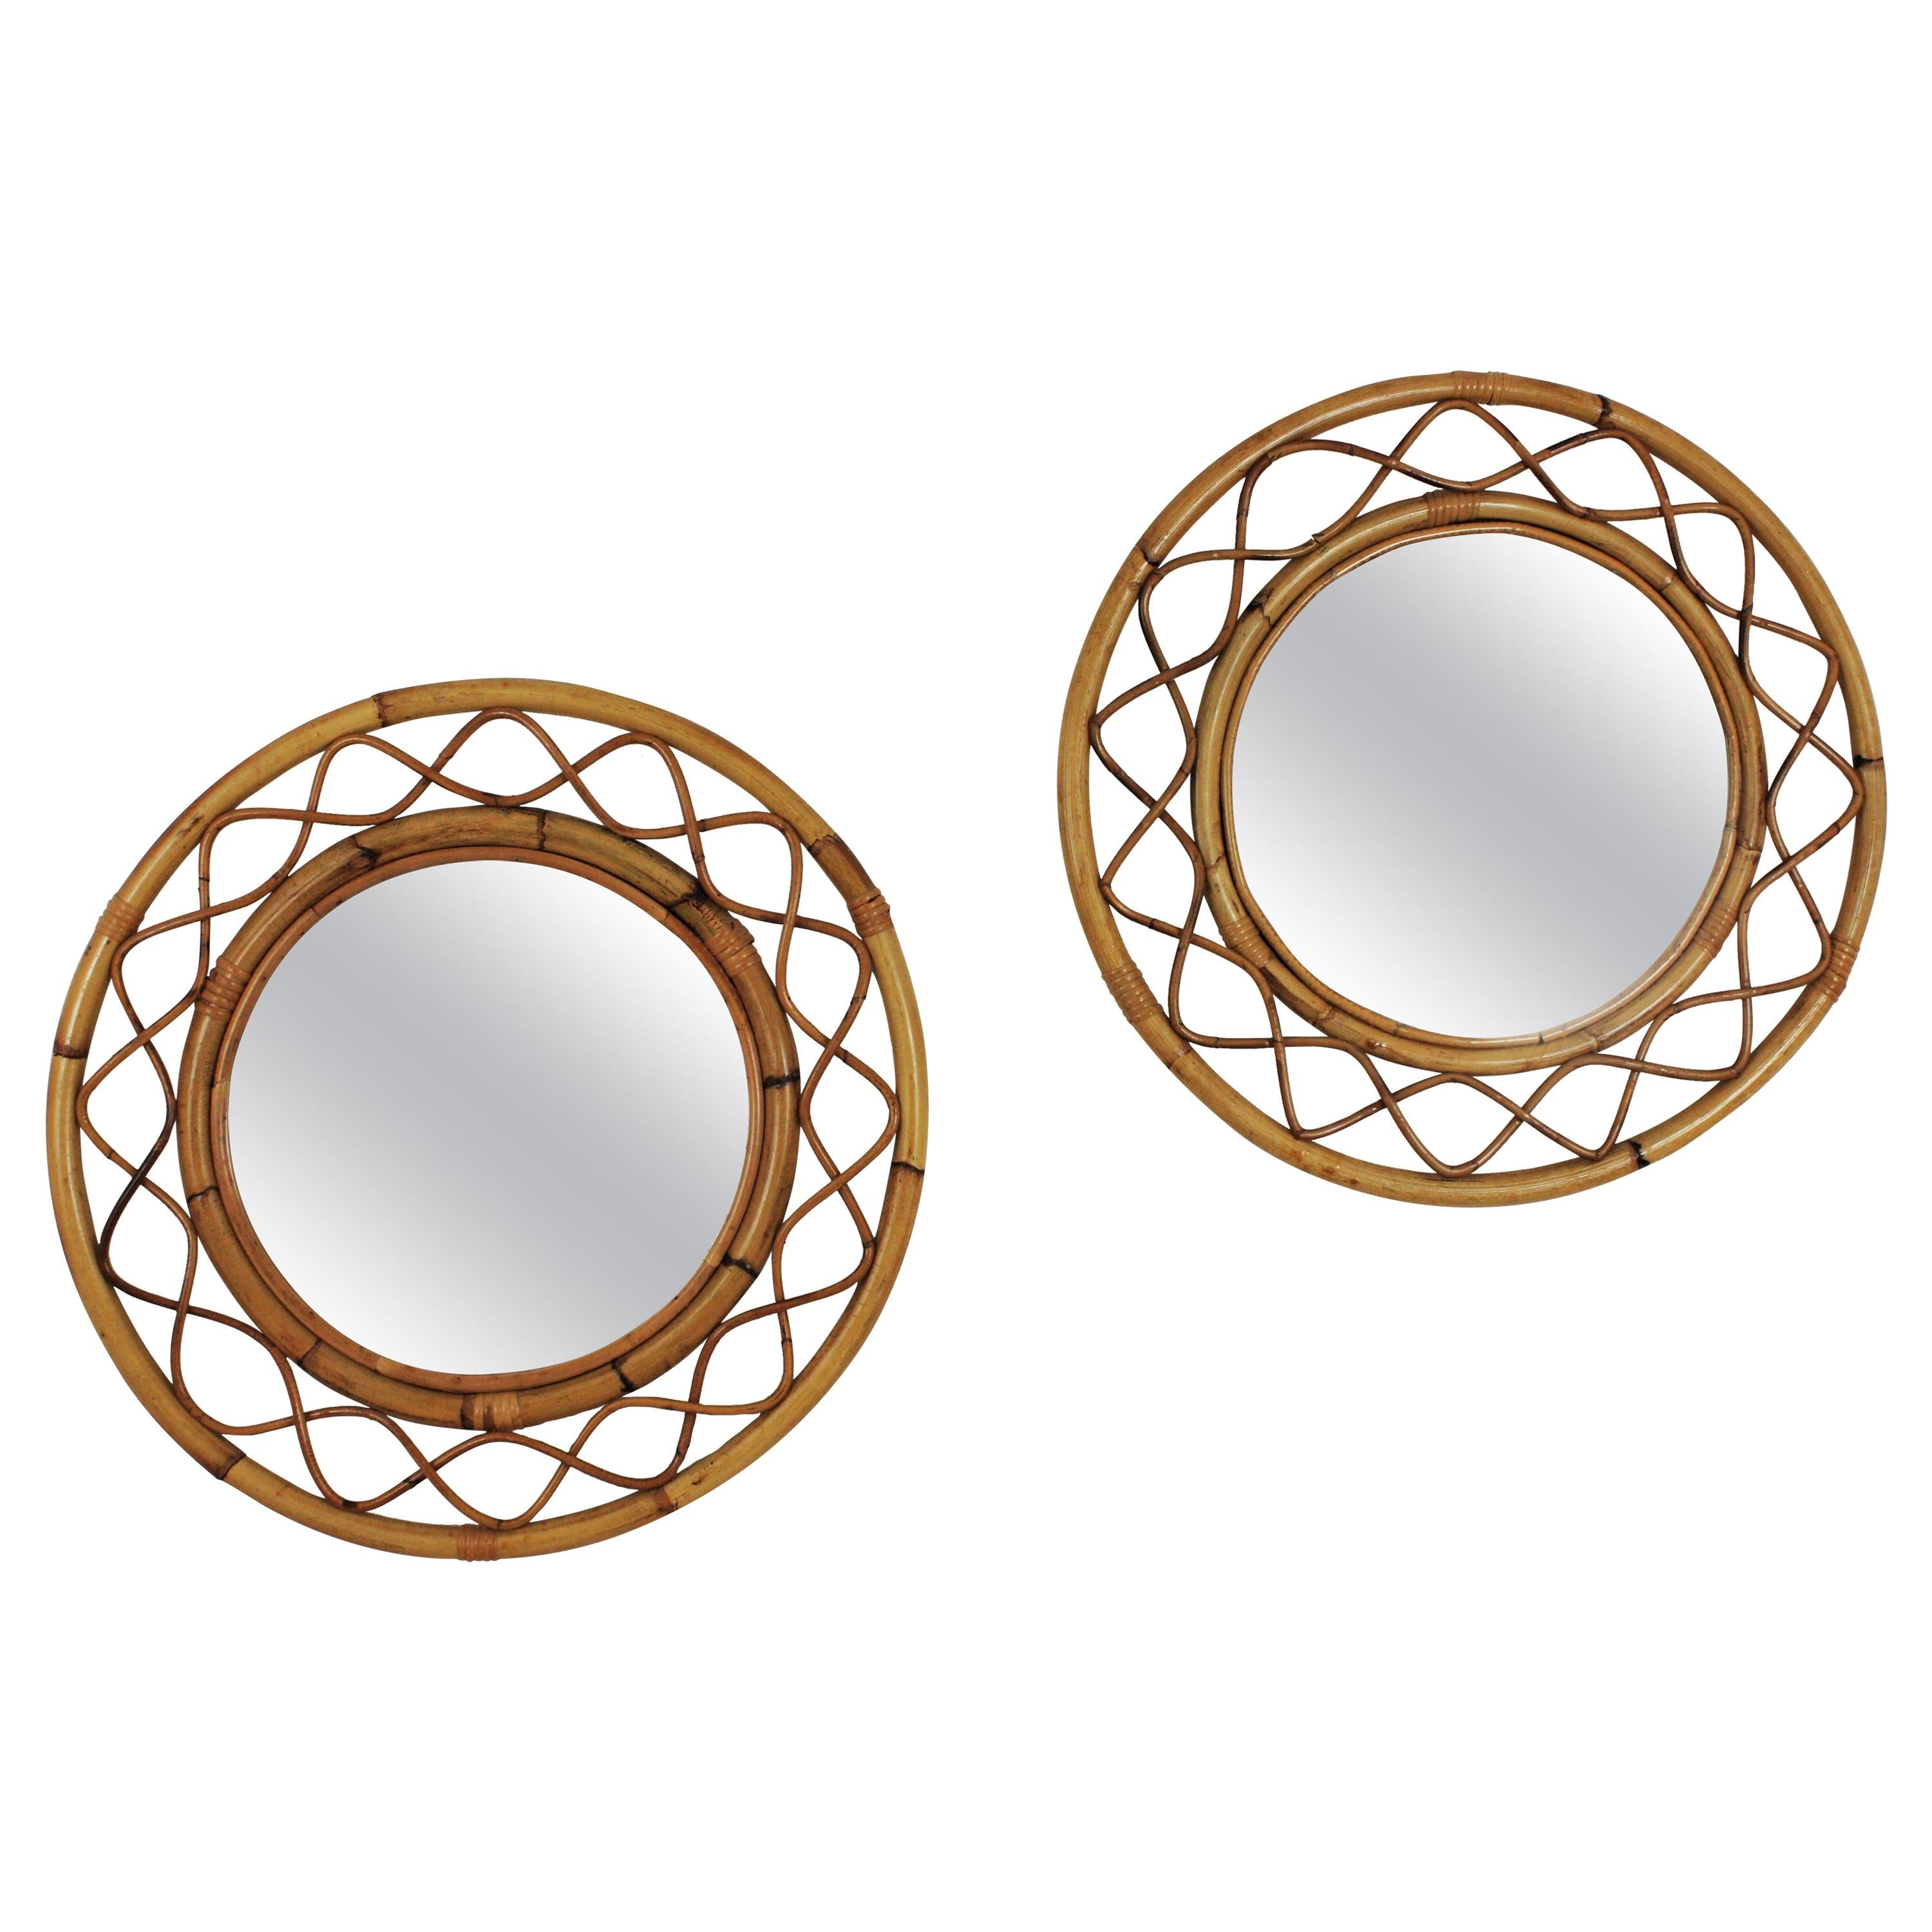 Pair of French Modern Franco Albini Style Bamboo and Rattan Round Wall Mirrors